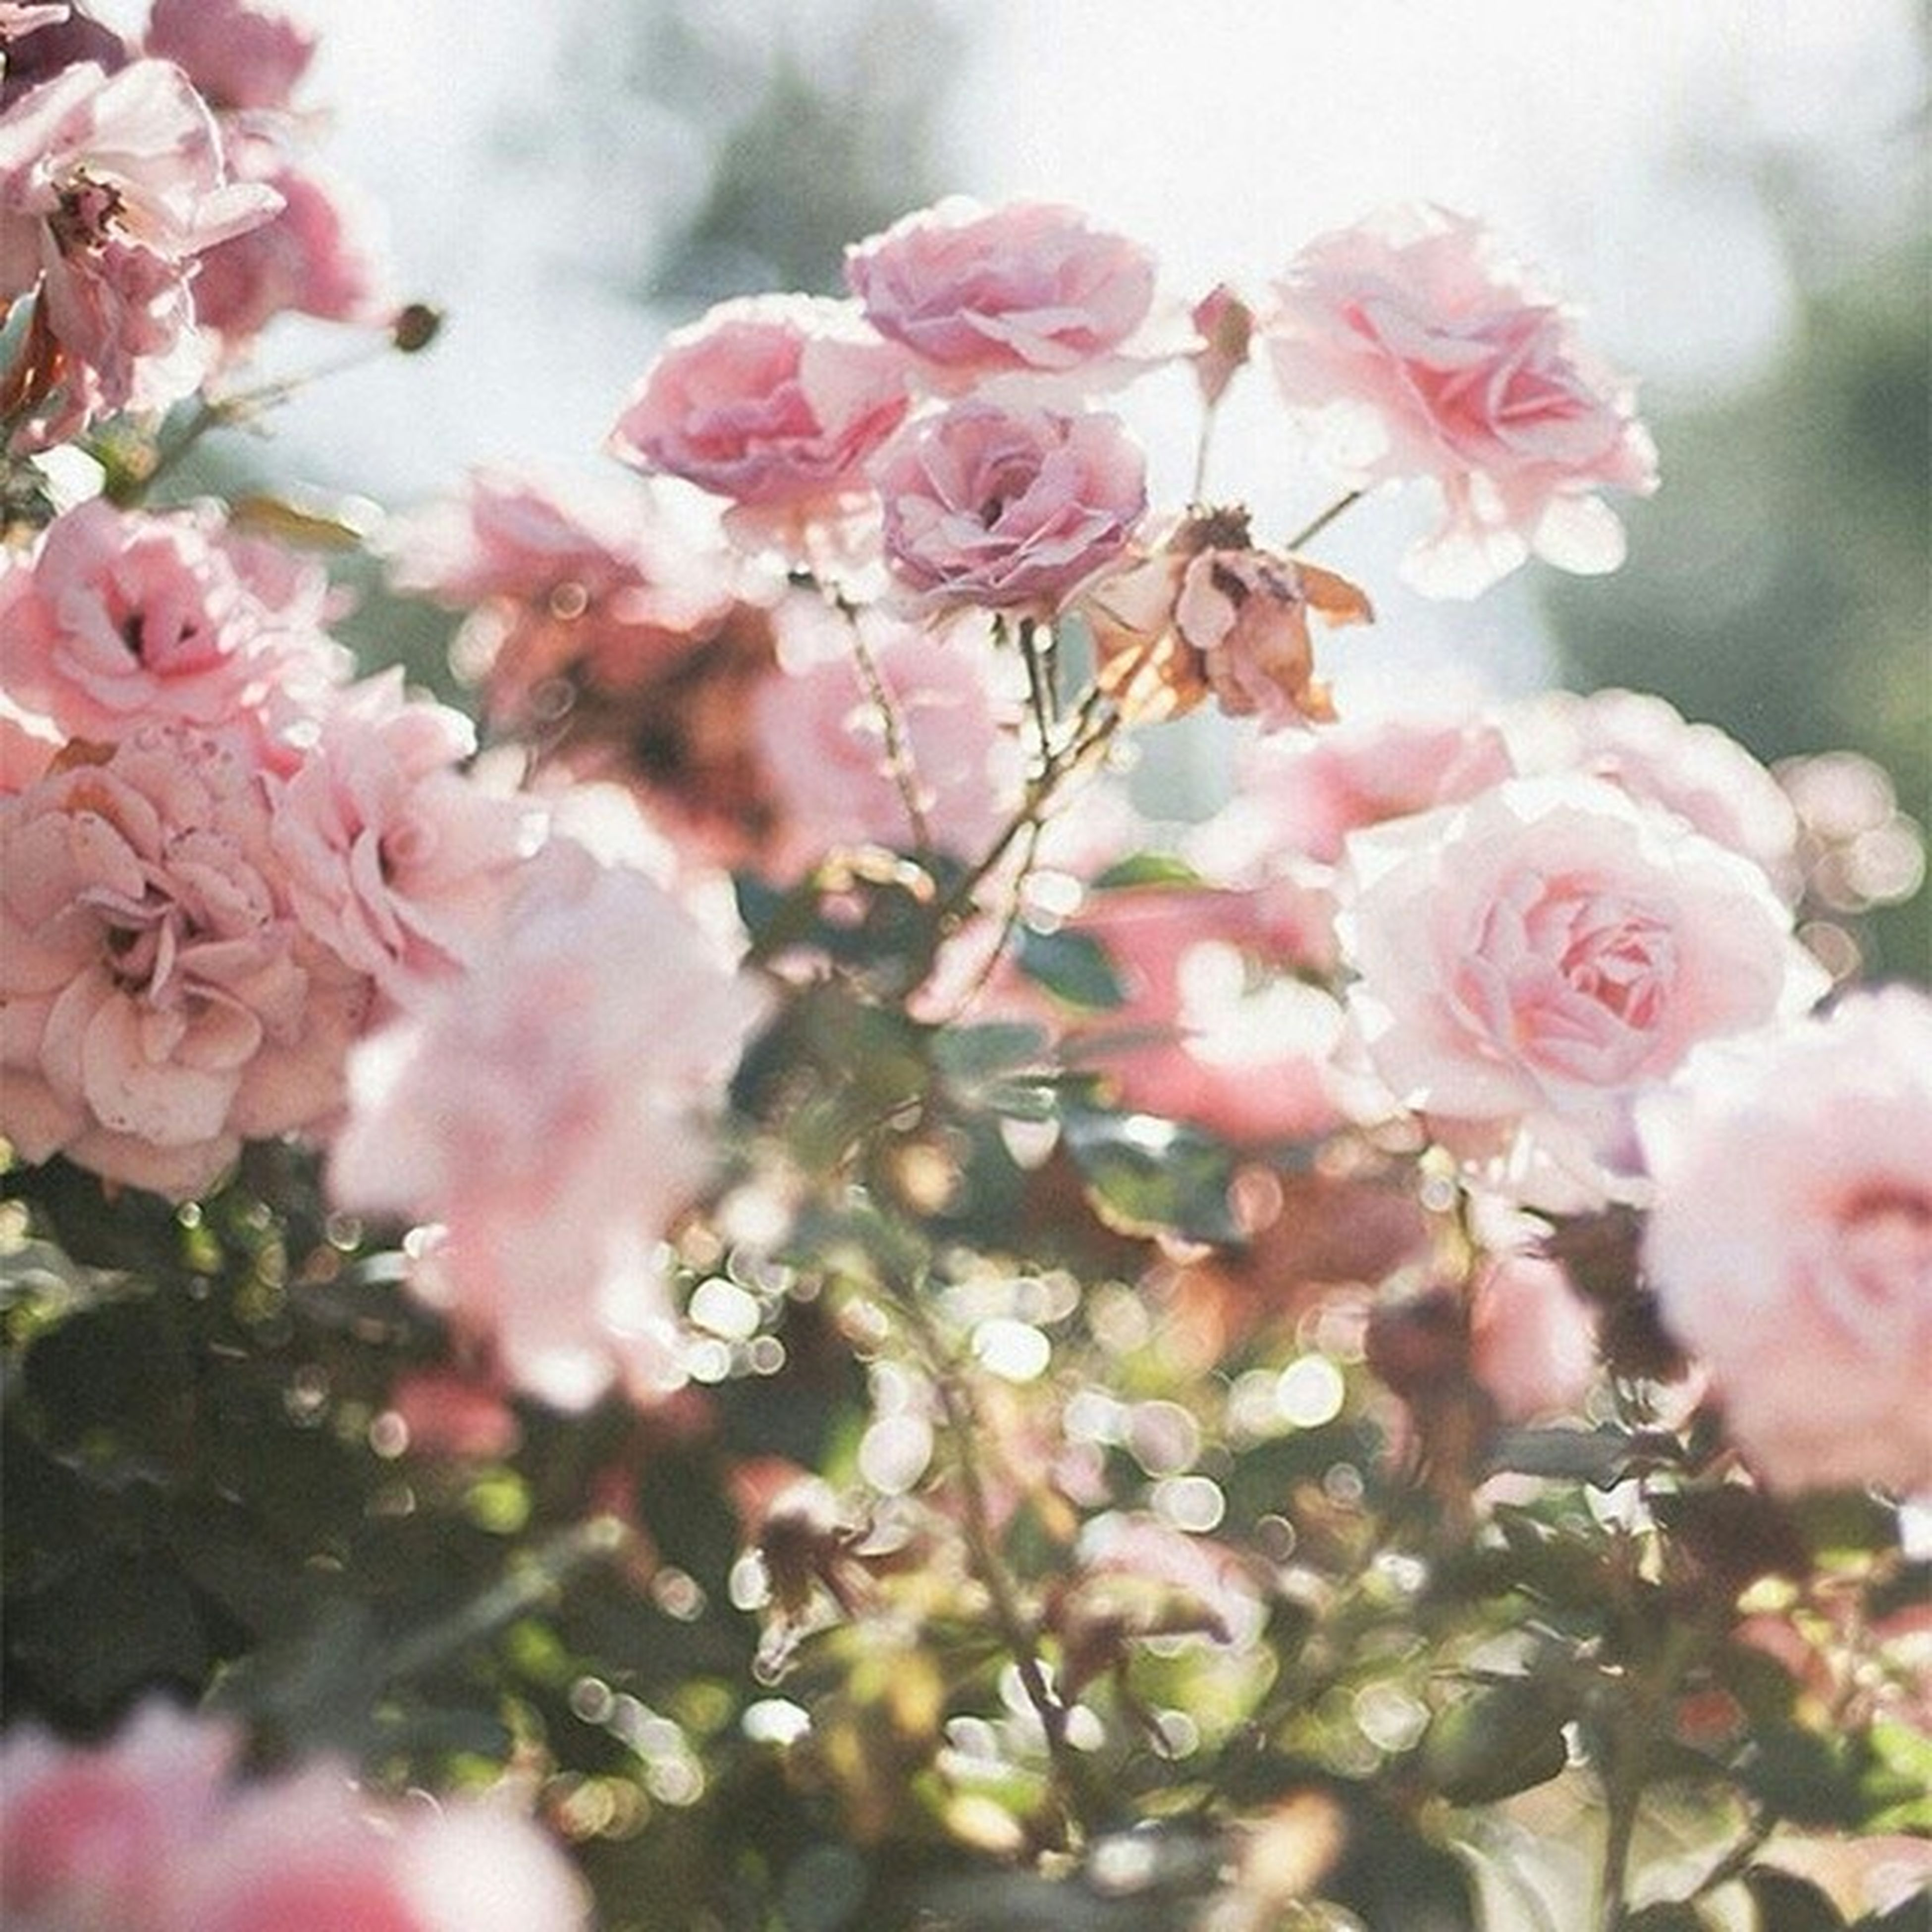 flower, freshness, fragility, pink color, growth, beauty in nature, petal, nature, close-up, blossom, branch, cherry blossom, focus on foreground, blooming, in bloom, flower head, cherry tree, tree, twig, springtime